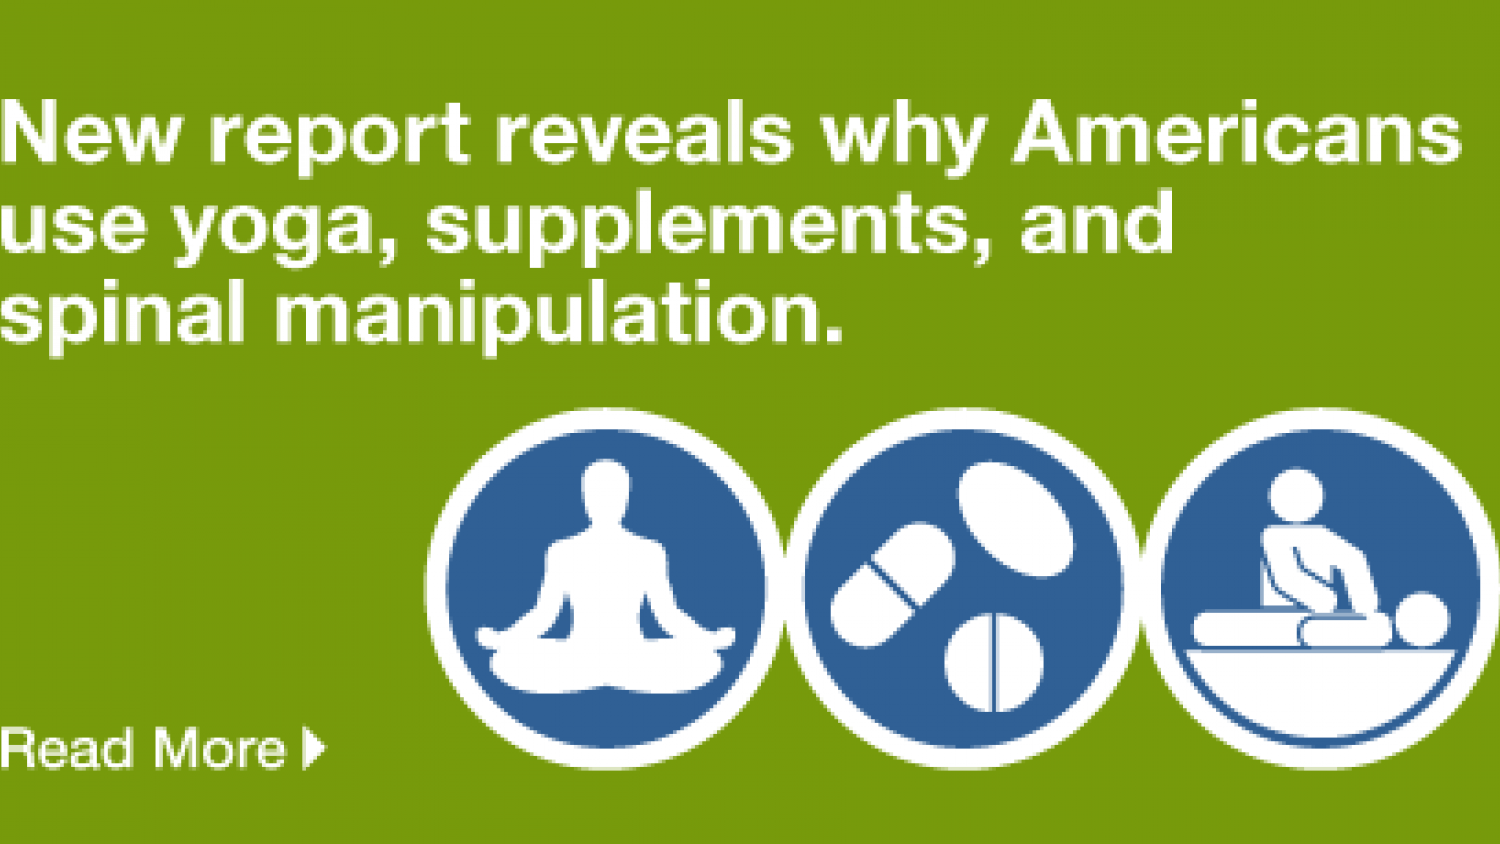 New report reveals why Americans use yoga, supplements, and spinal manipulation.  READ MORE